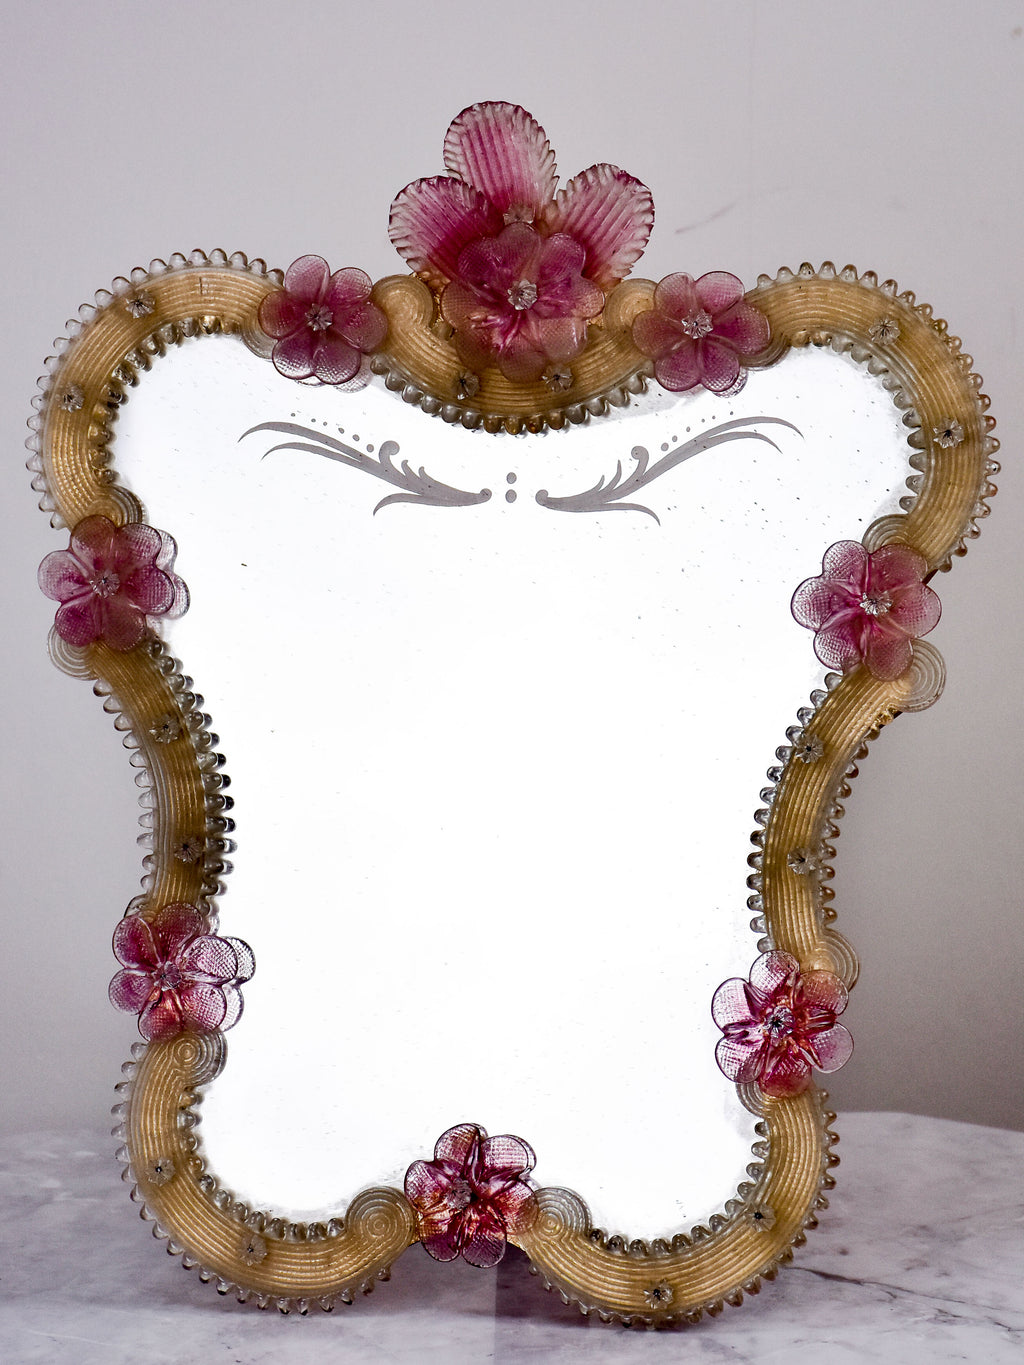 Small antique Venetian mirror with pink flowers